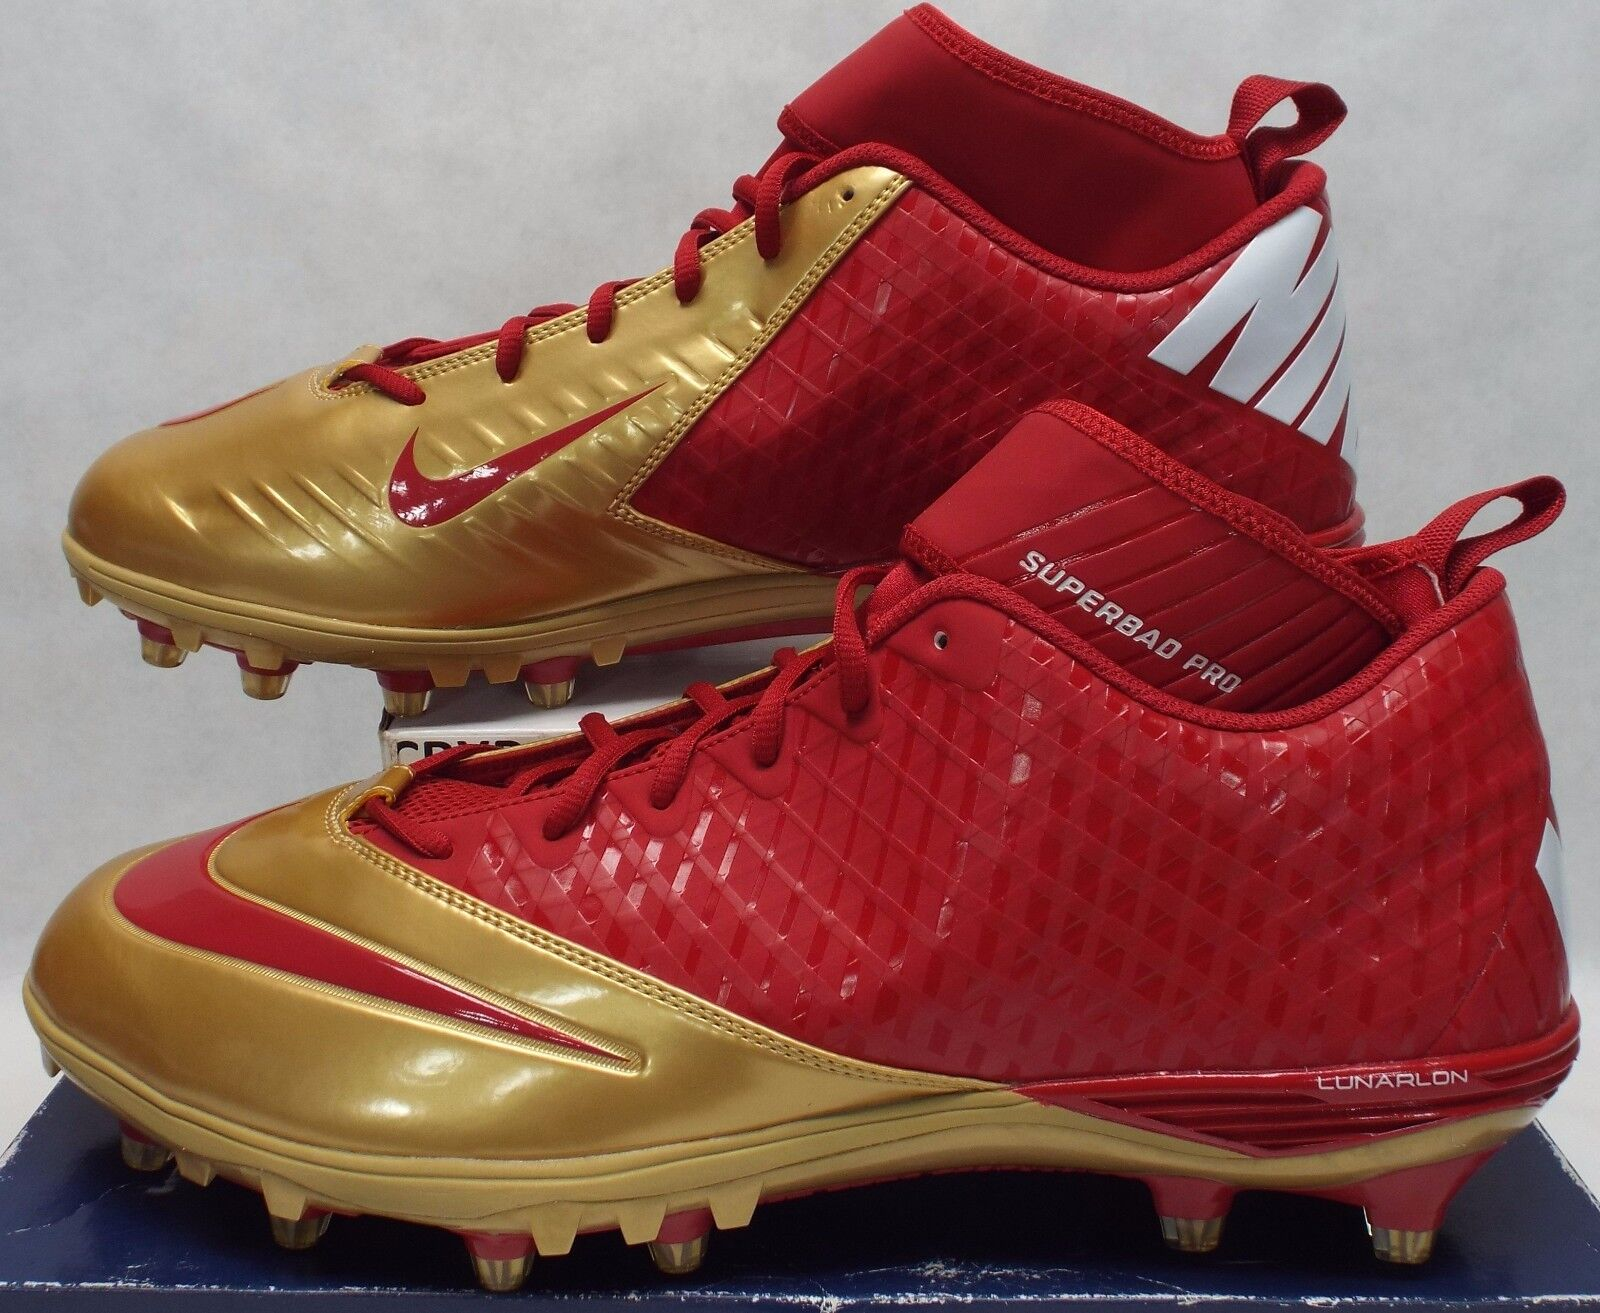 New Mens 16 NIKE Lunarlon Superbad Red Gold Cleats Shoes Price reduction